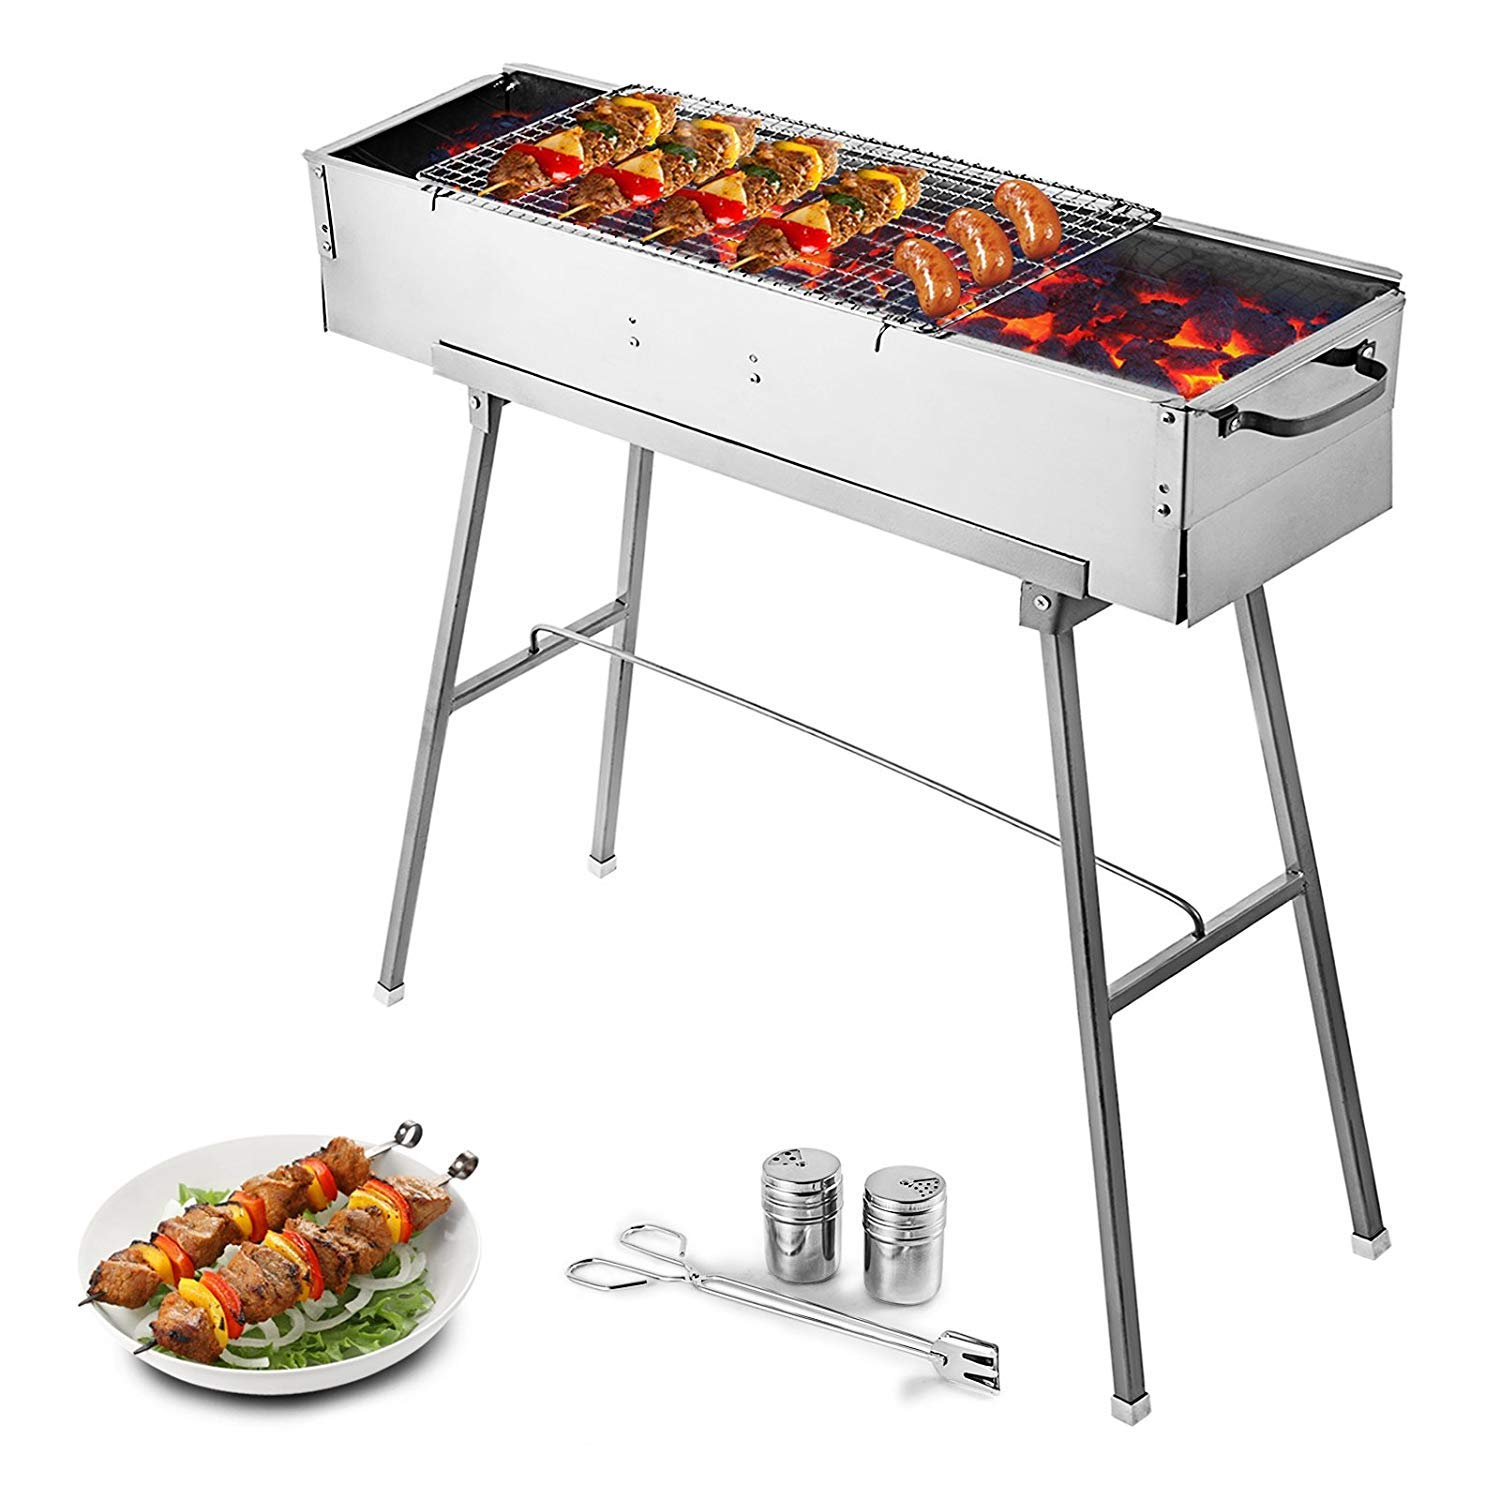 VEVOR Folded Portable Charcoal BBQ Grill 32'' X 8'' Stainless Steel Kebab Perfect for Outdoor Barbecue Camping, Silver